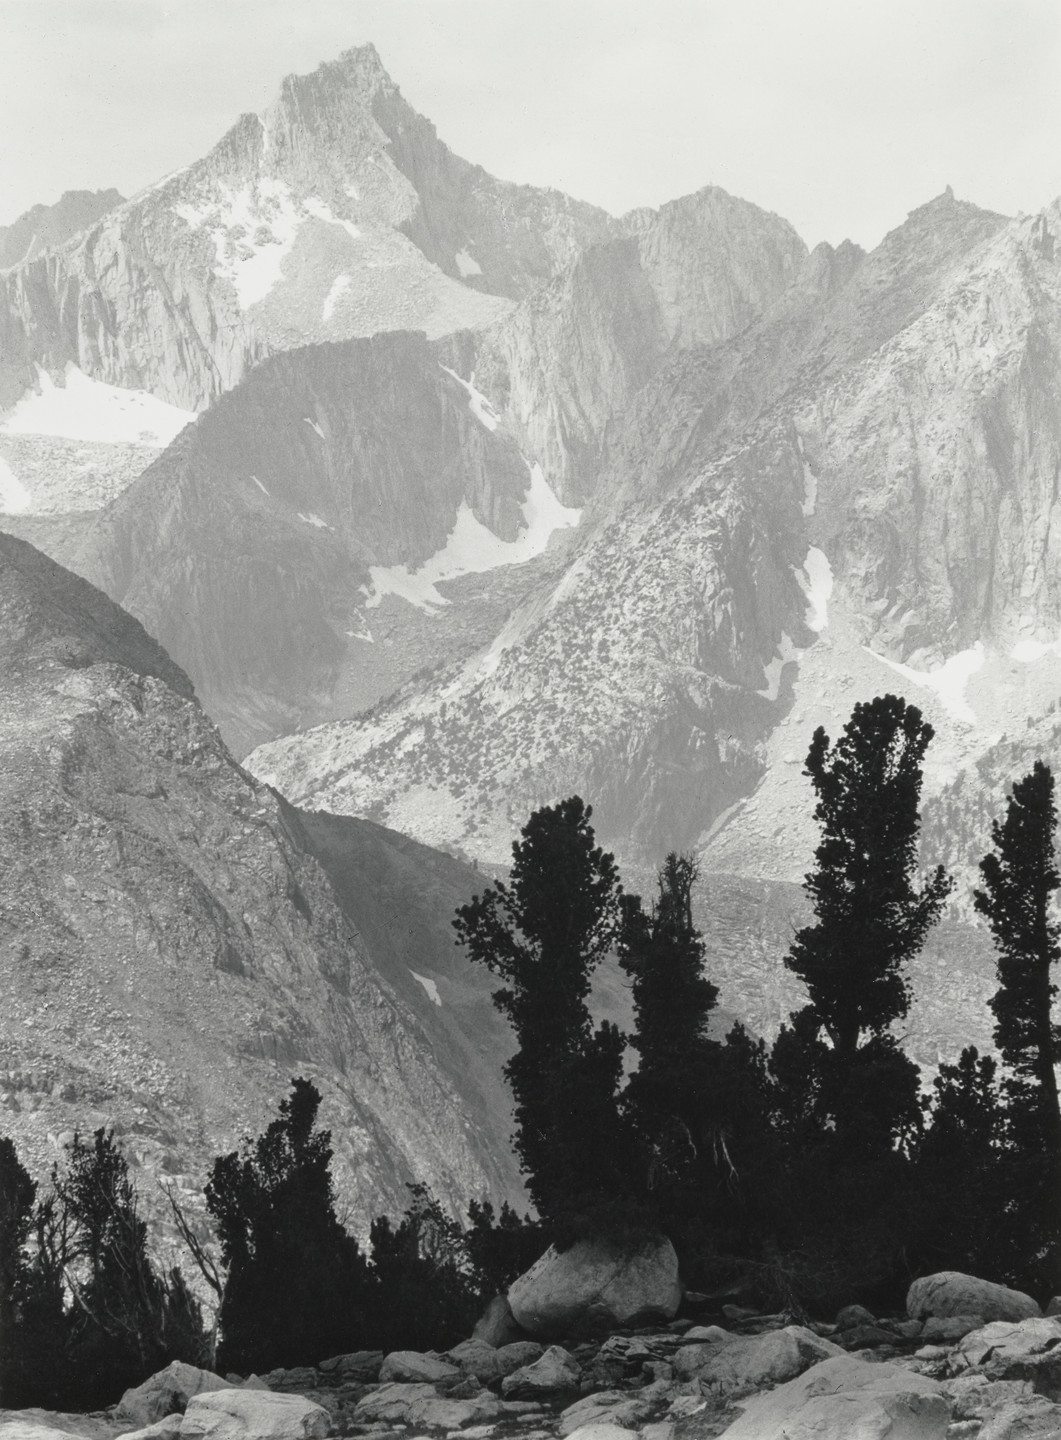 Ansel Adams. Mount Clarence King, Kings Canyon National Park, California. 1924